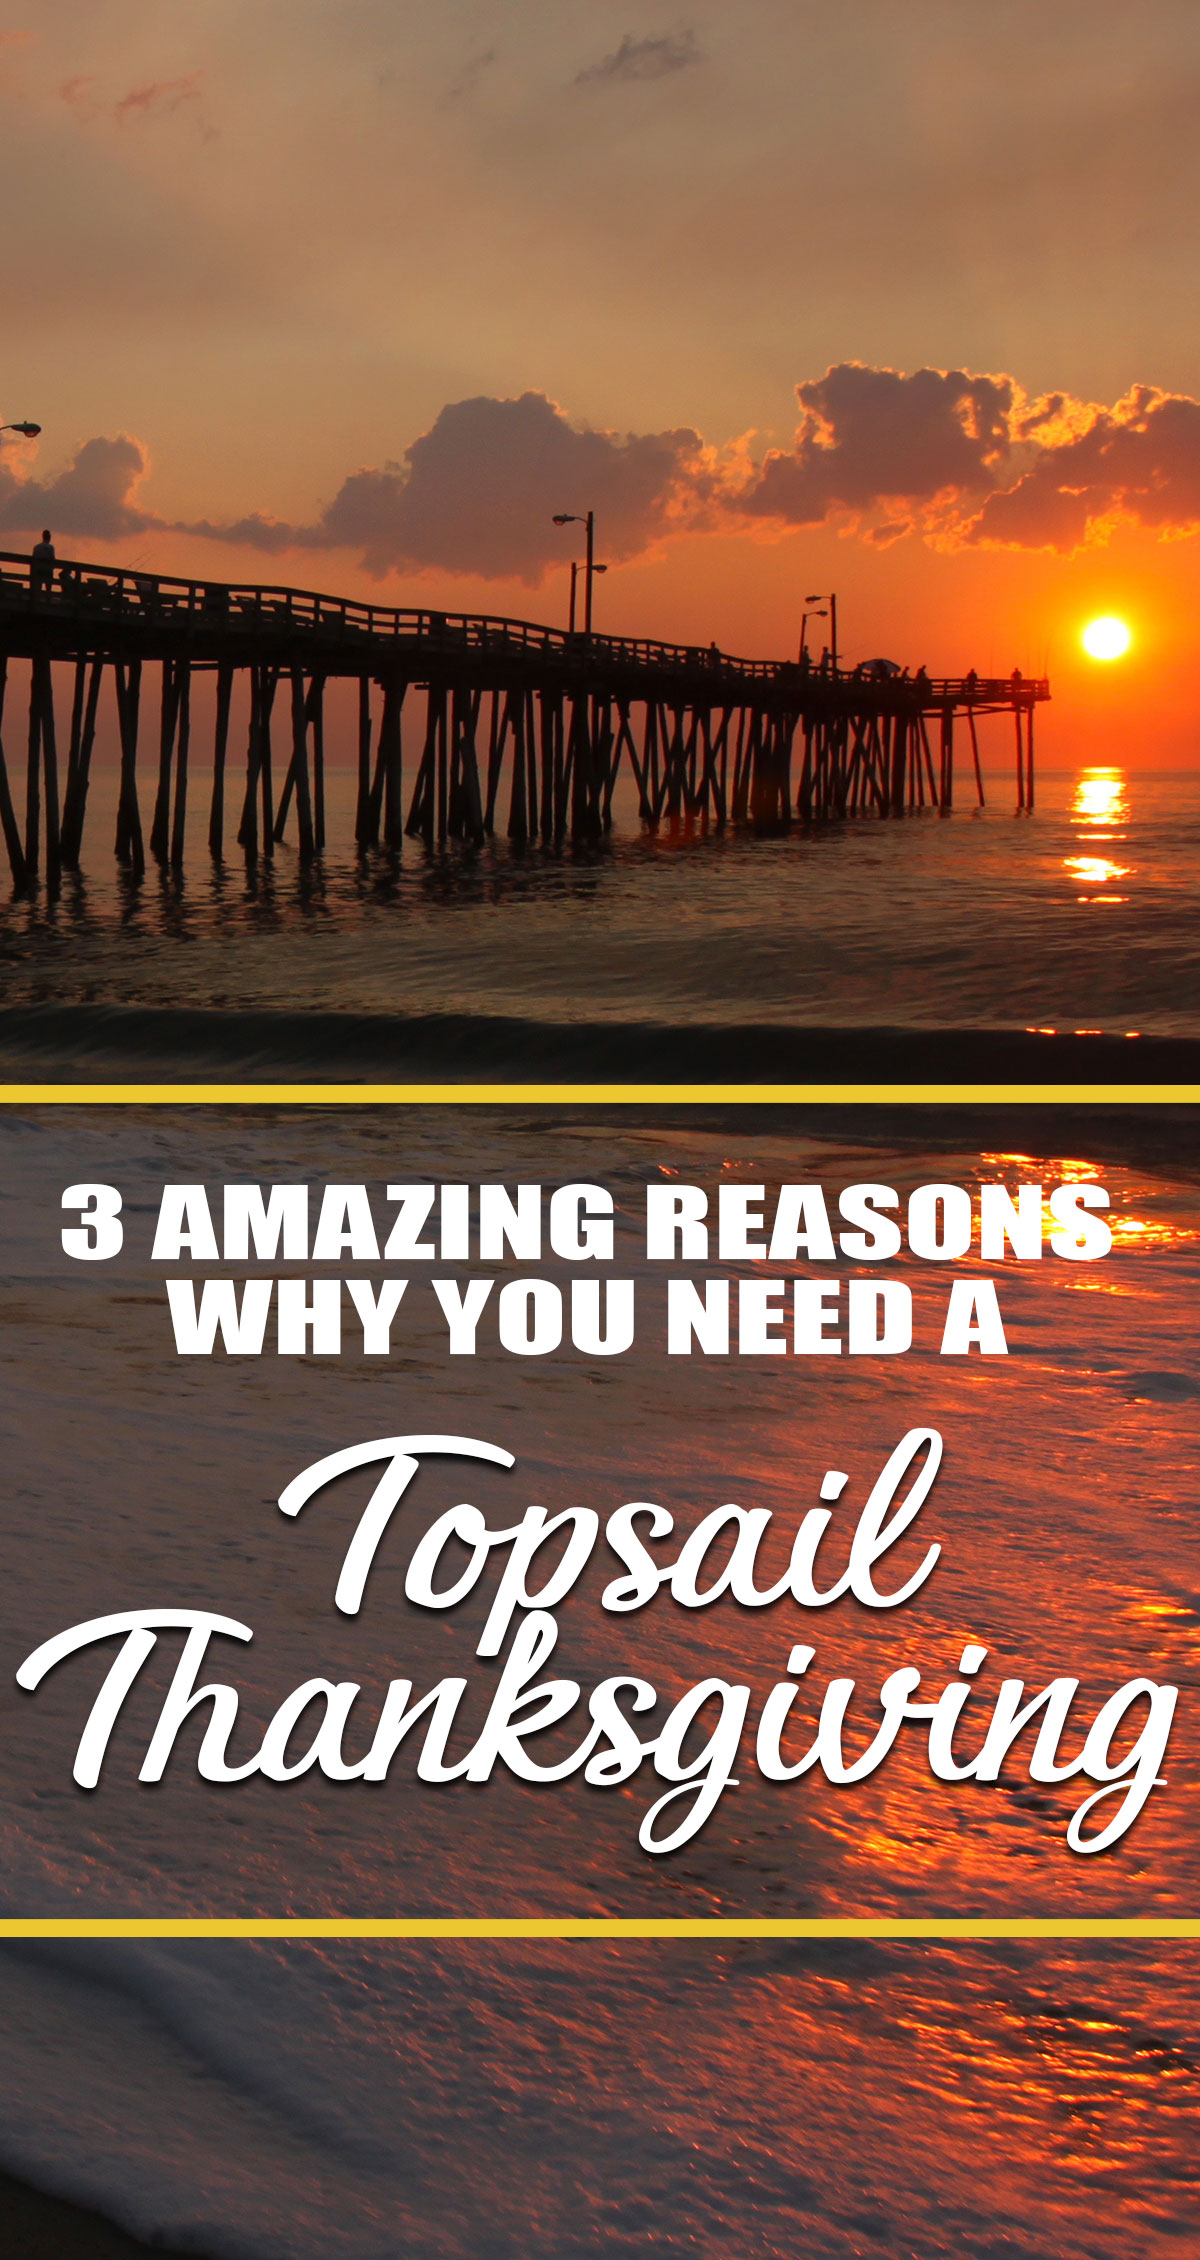 3 Amazing Reasons Why You Need a Topsail Thanksgiving Pin